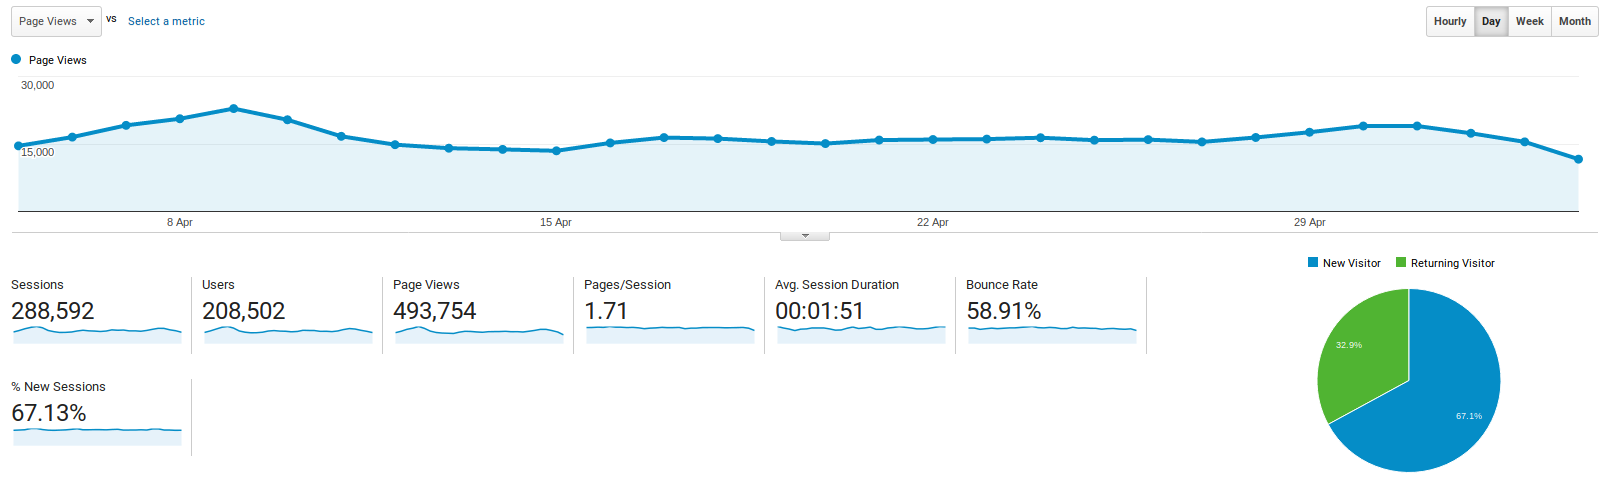 Analyzing Pageviews in Google Analytics